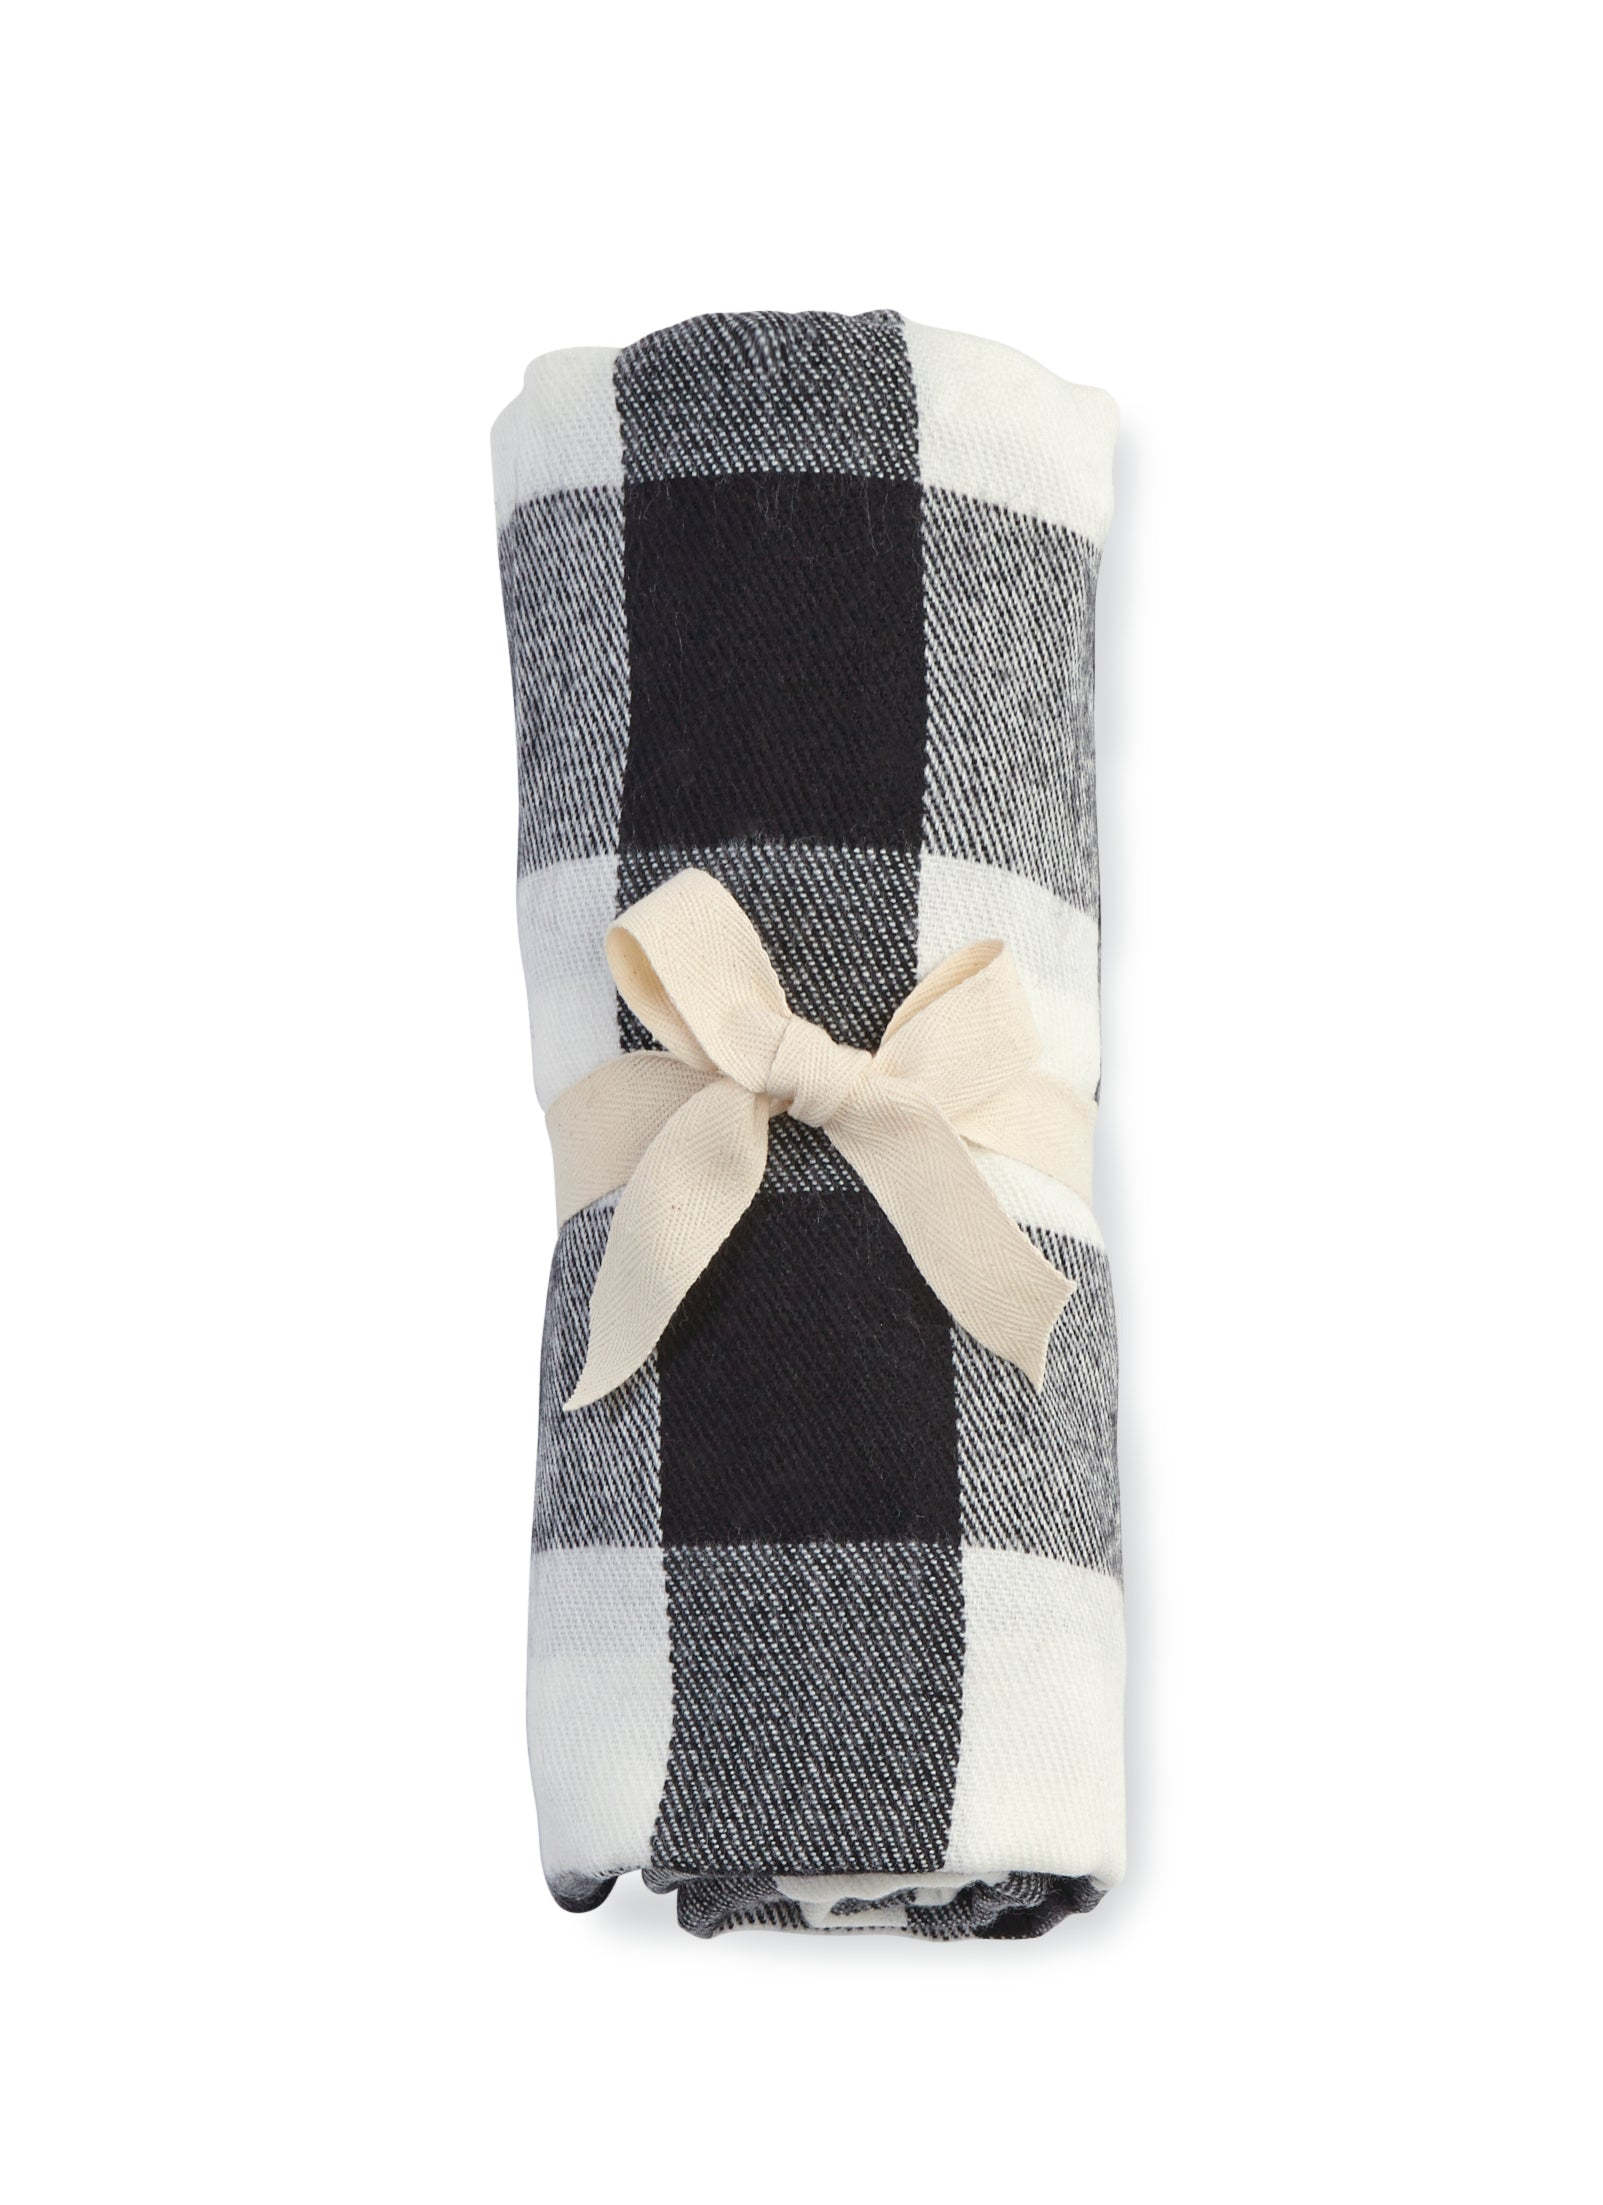 Mud Pie White Buffalo Check Fringe Blanket